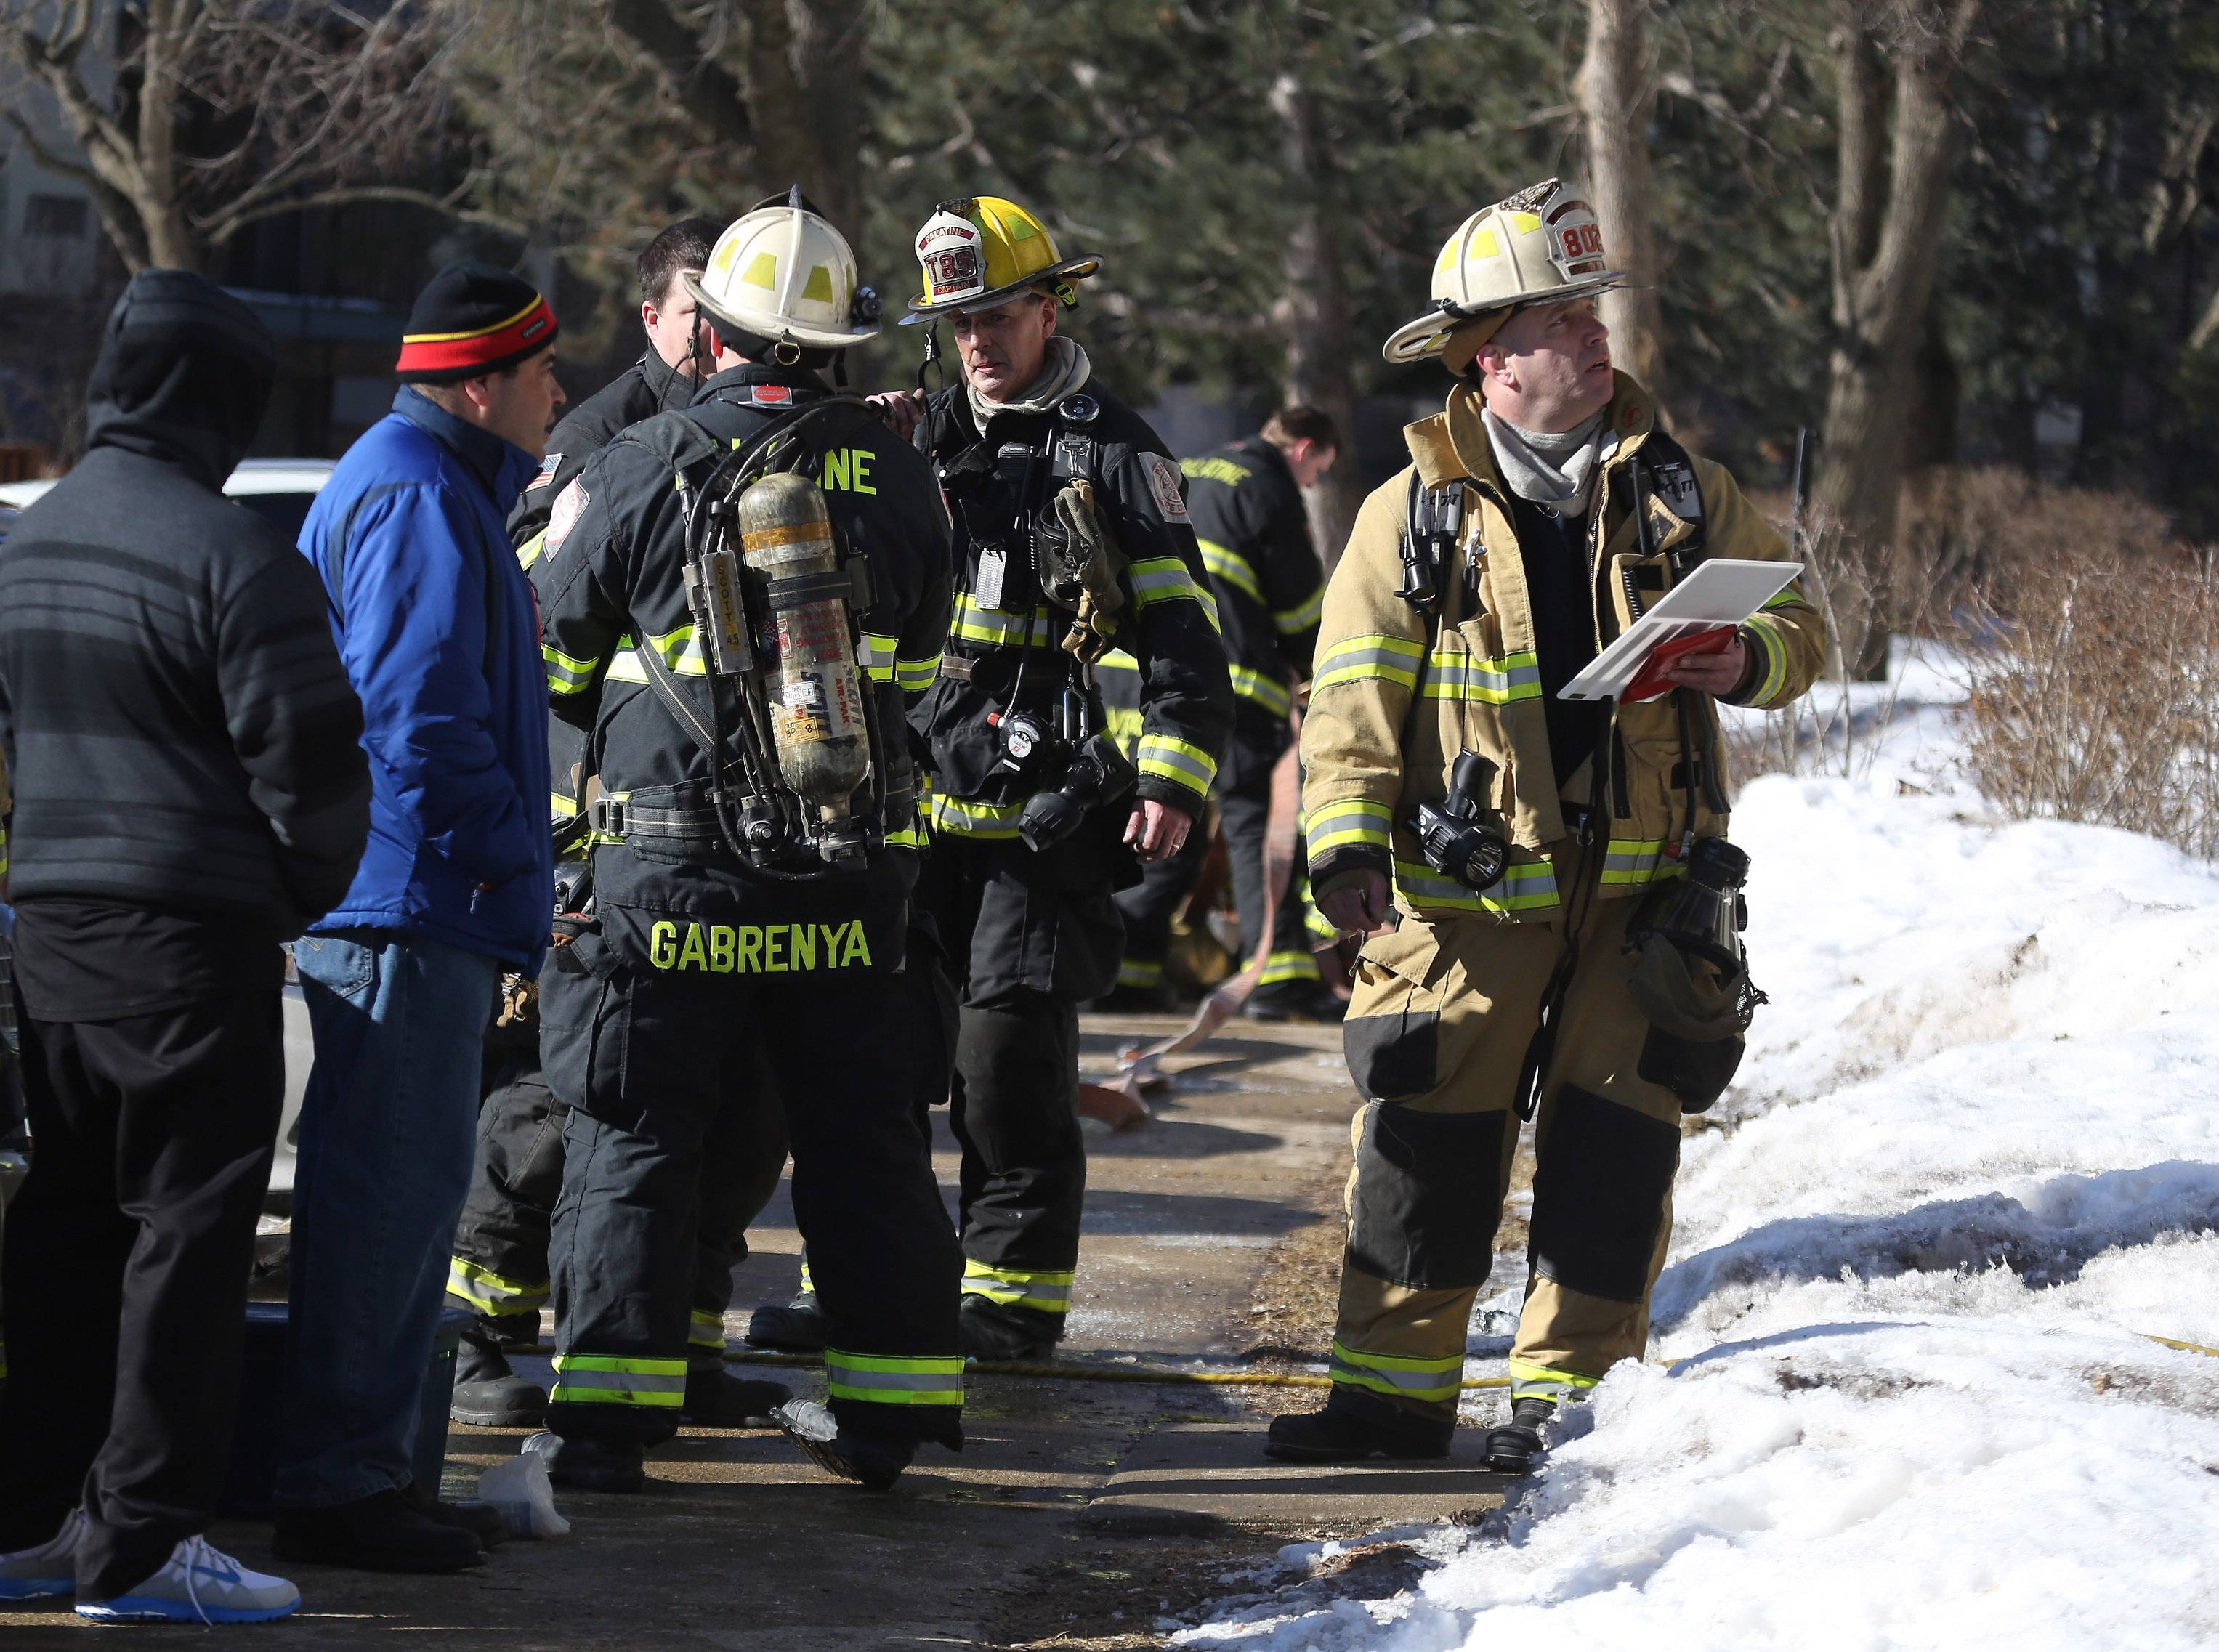 Palatine firefighters responded to a condominium fire Sunday morning at the Brentwood of Palatine Condominiums. The fire at the three-story building was quickly put out by the Palatine Fire Department and no injuries were reported, according to Deputy Chief William Gabrenya.